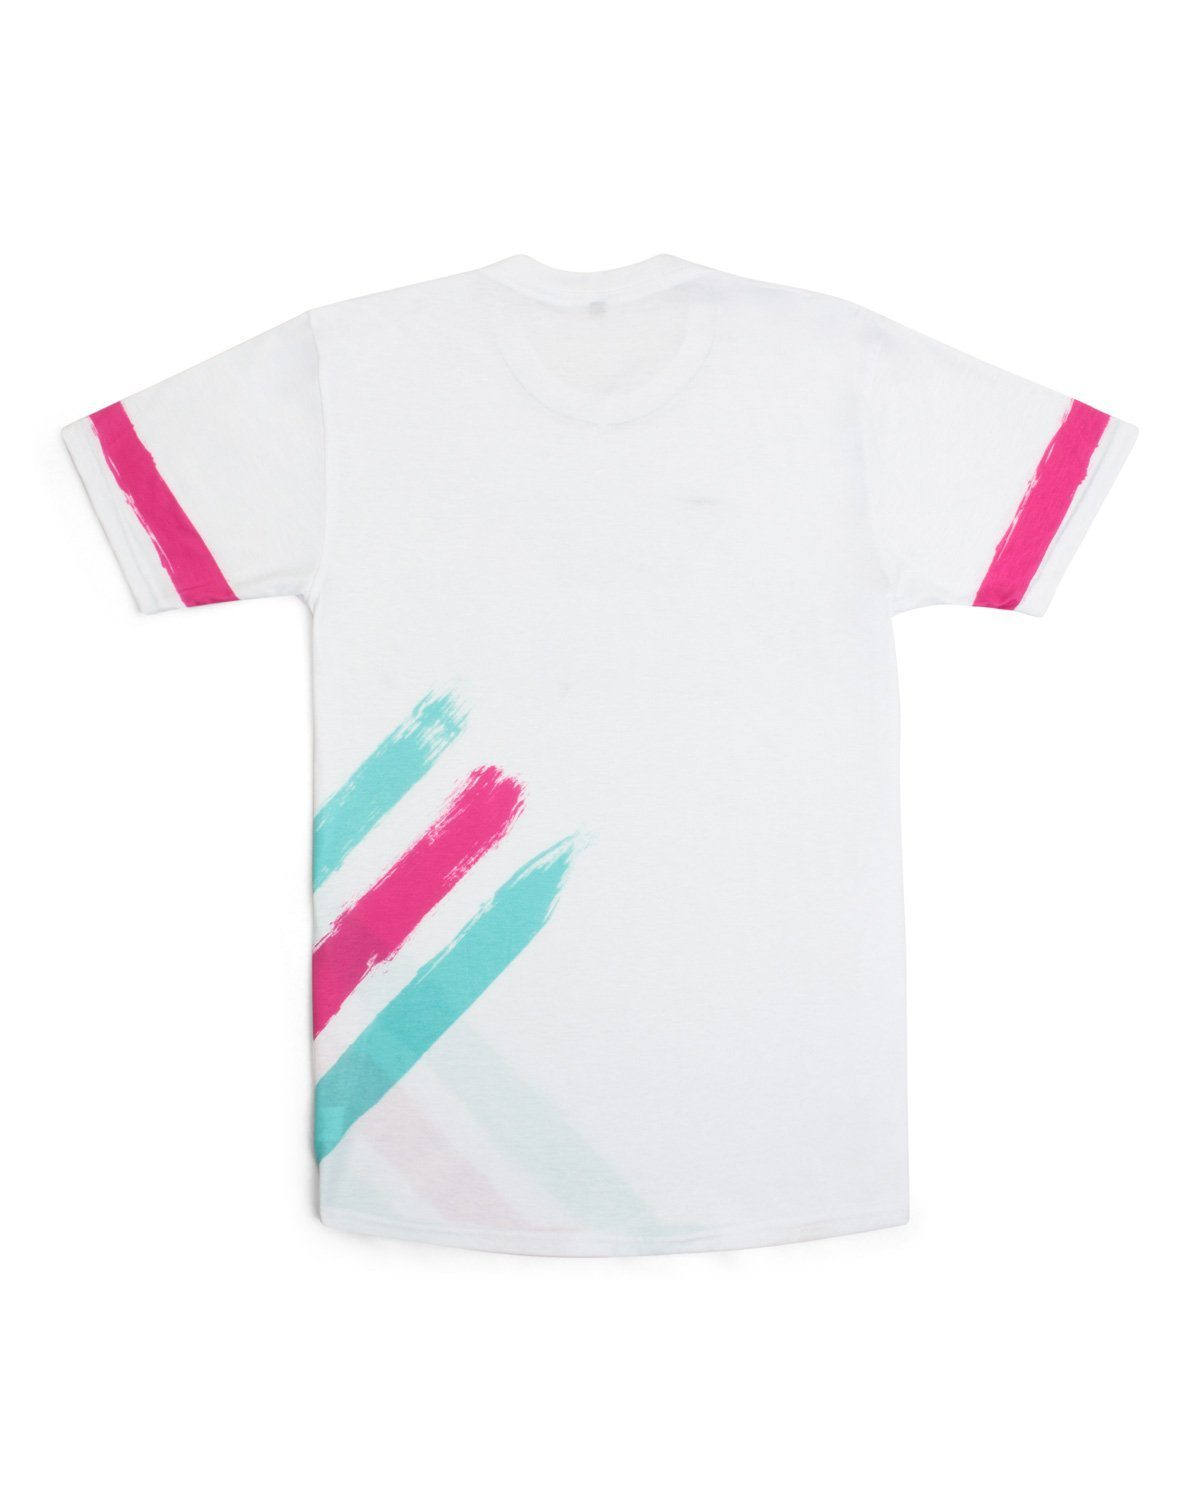 'Brushstroke' Unisex T-Shirt - White